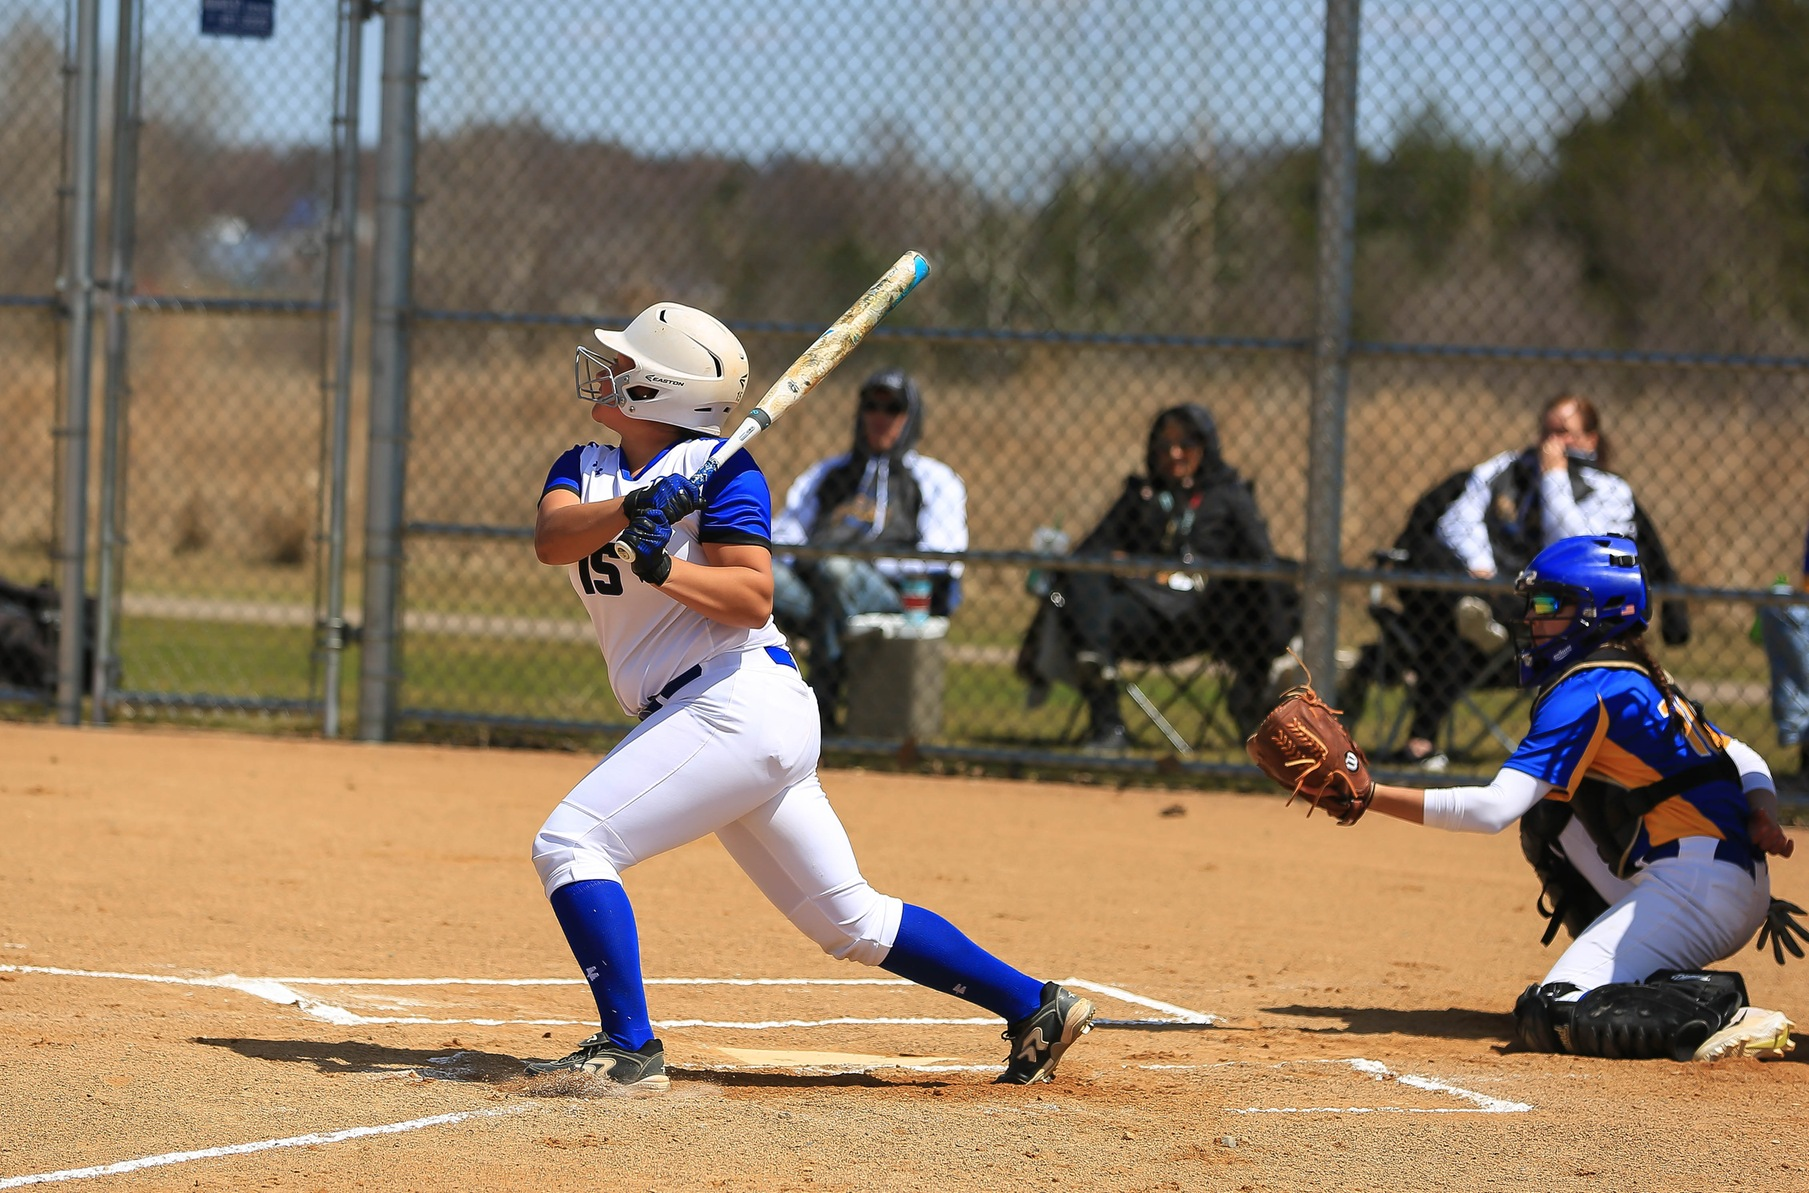 Softball Sweeps Gogebic in four game series